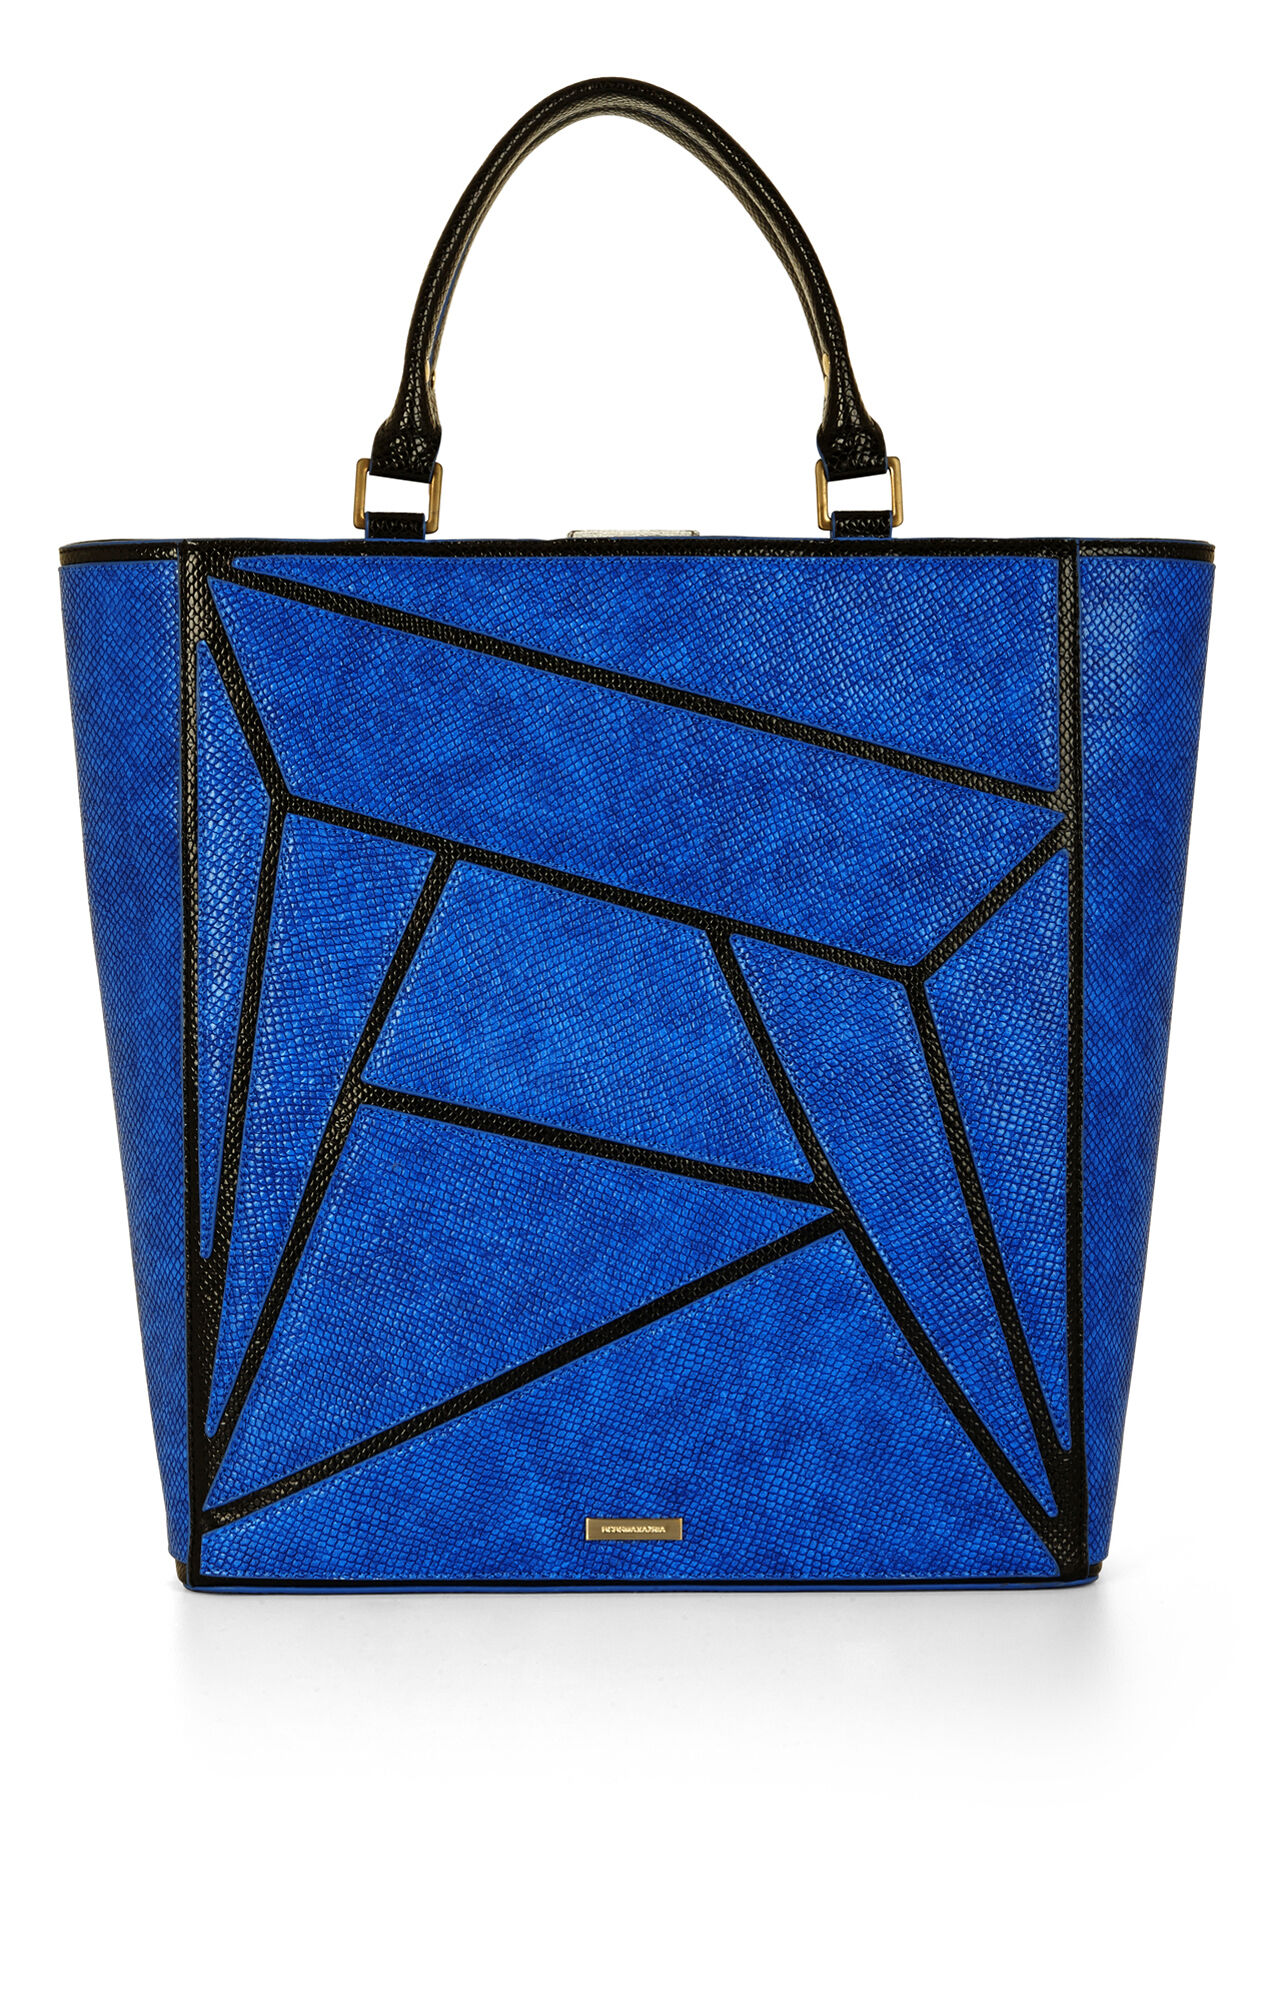 Witney Tote